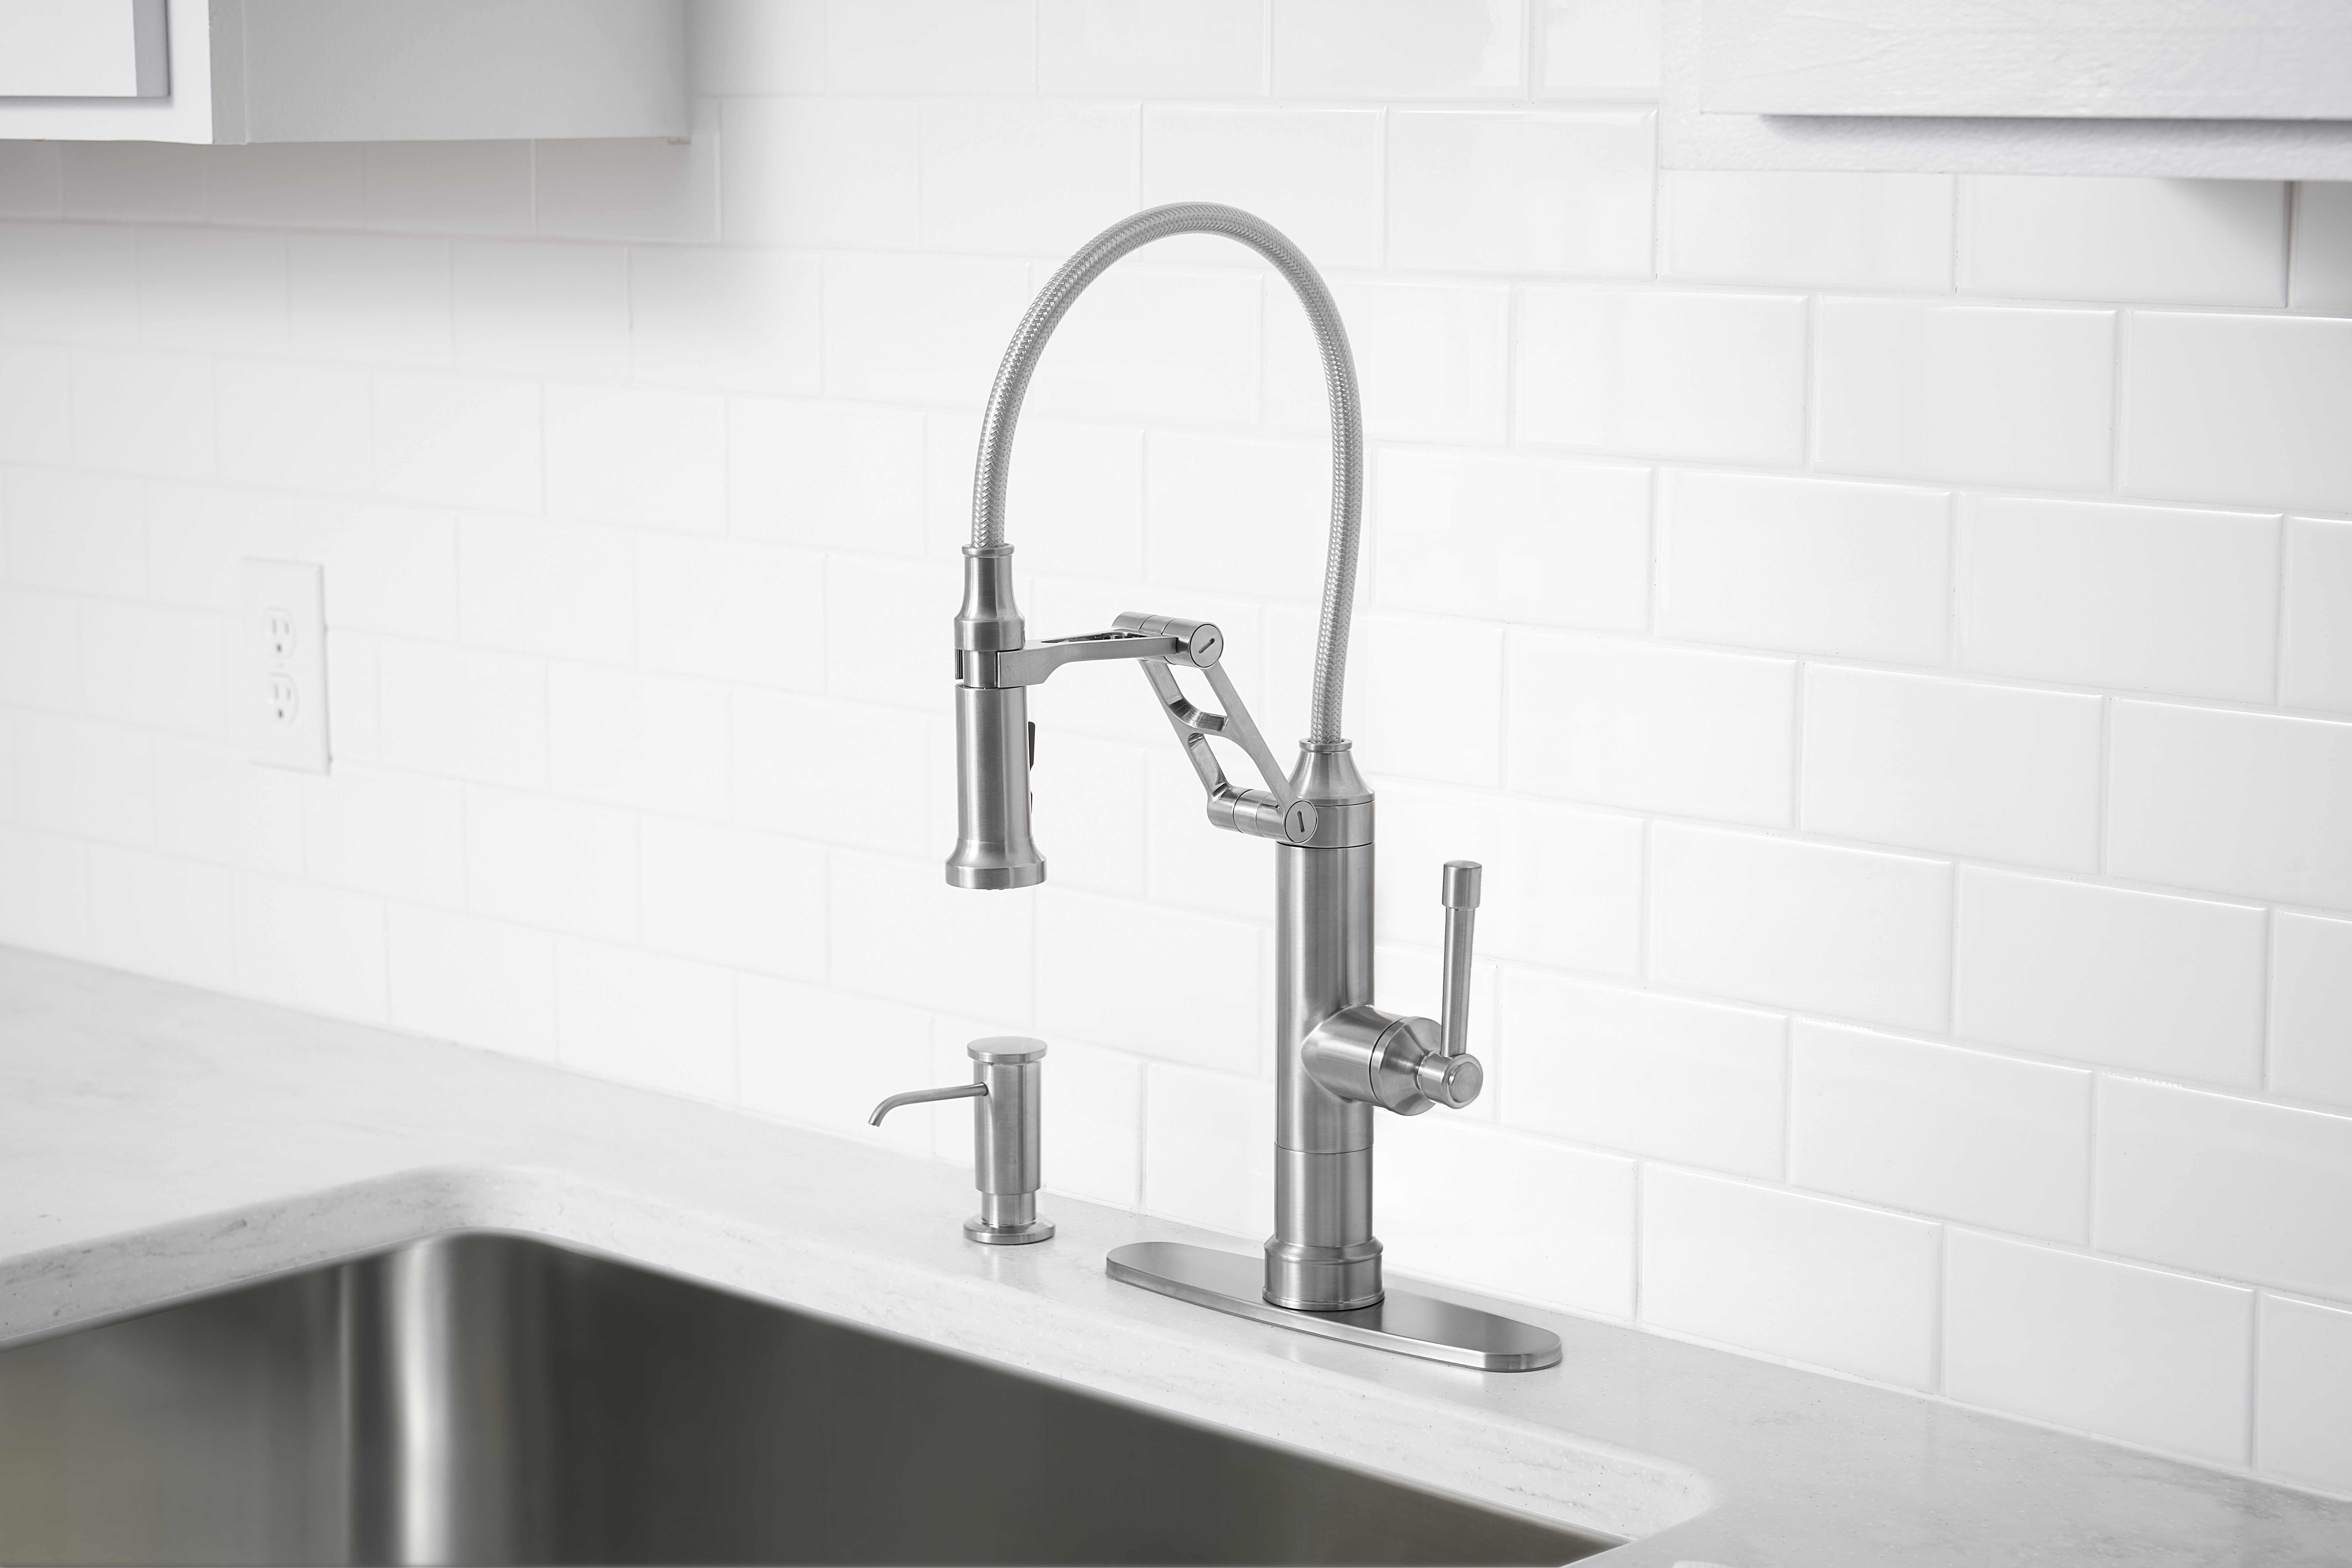 Picture of: Giagni Strattura Pull Down Single Handle Kitchen Faucet With Soap Dispenser Reviews Wayfair